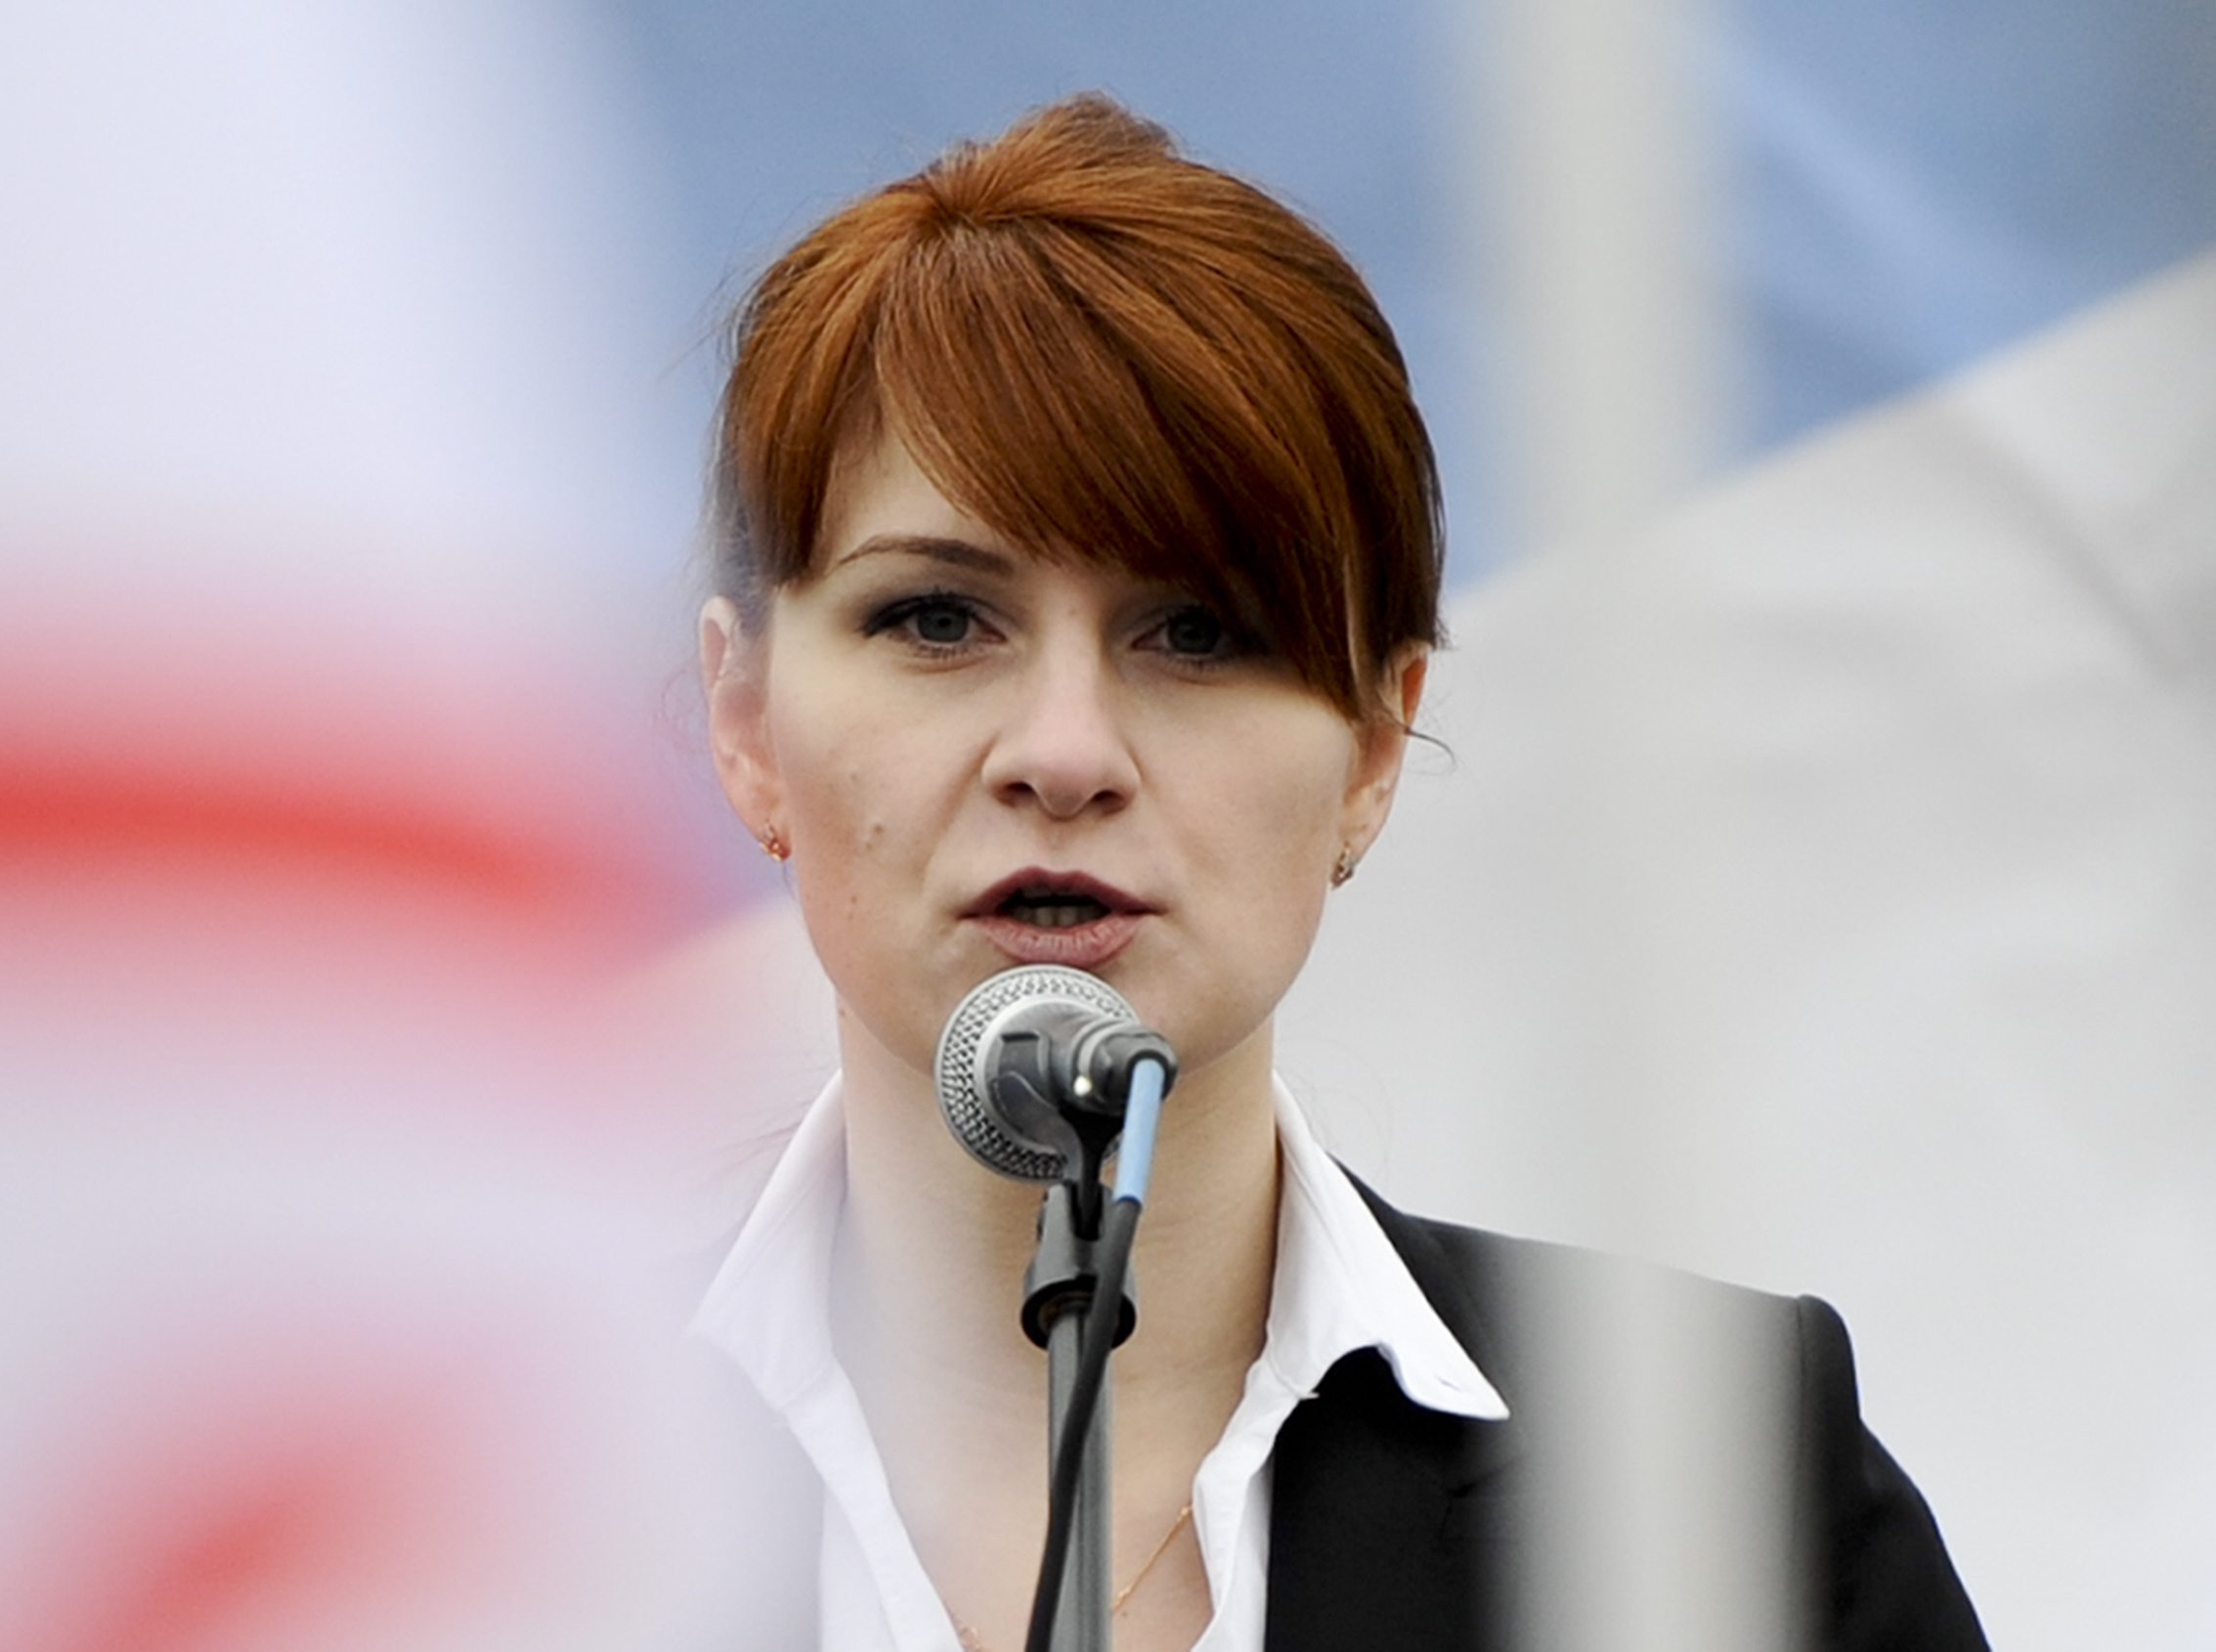 #FreeMariaButina: Russia's Foreign Ministry just launched a Twitter campaign for the accused spy